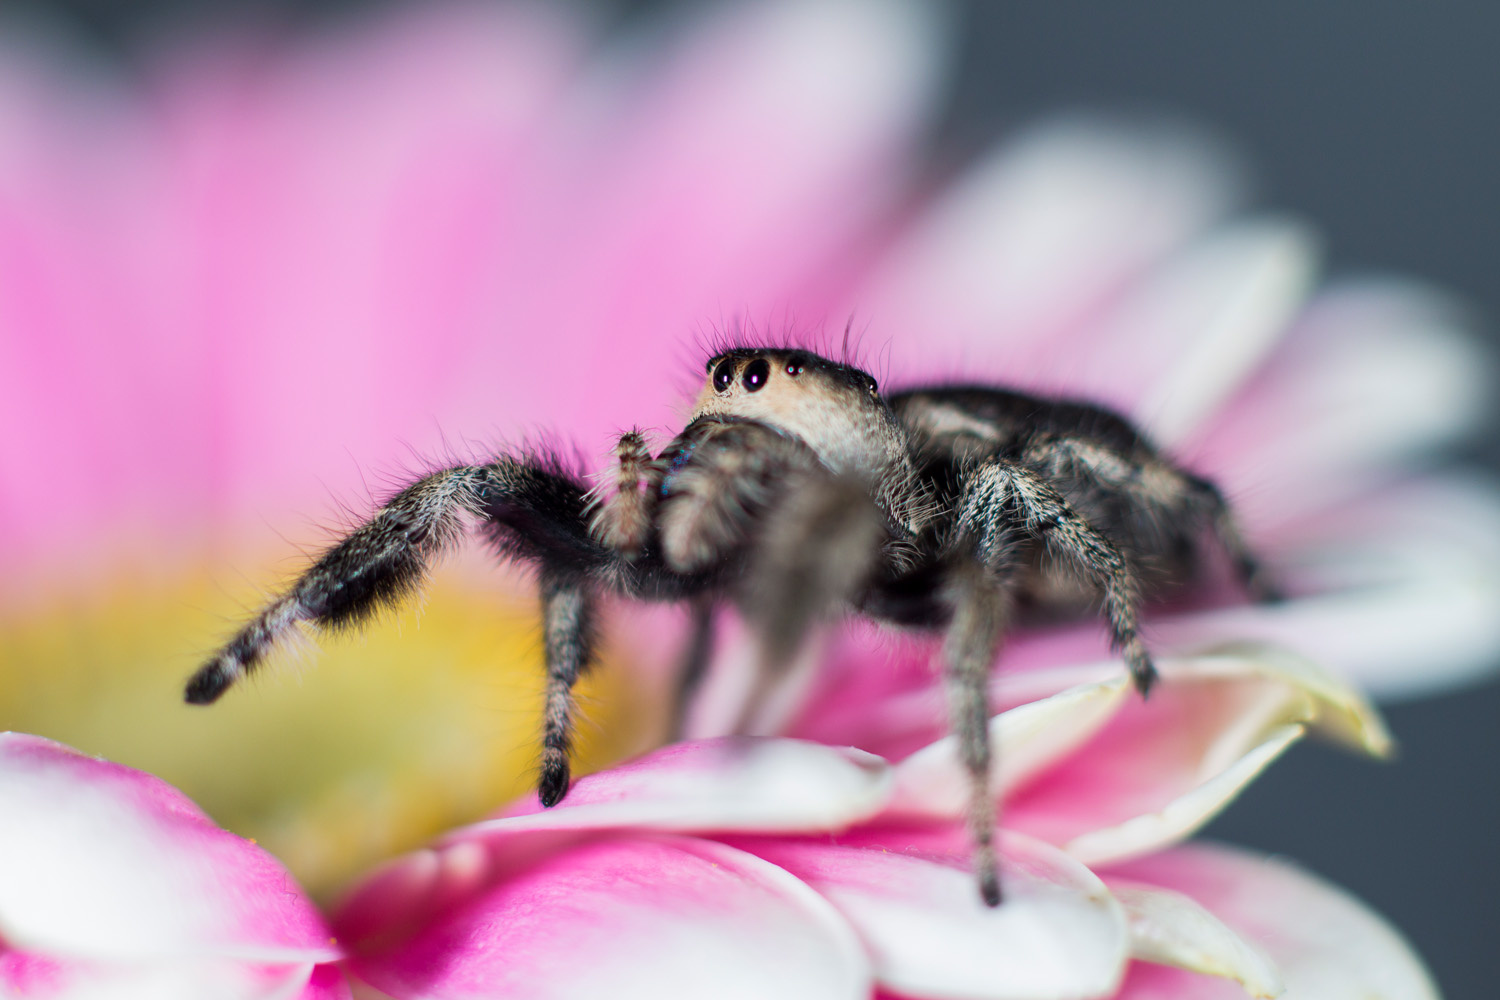 Figure 4: Focusing on the eyes will help improve your macro images.